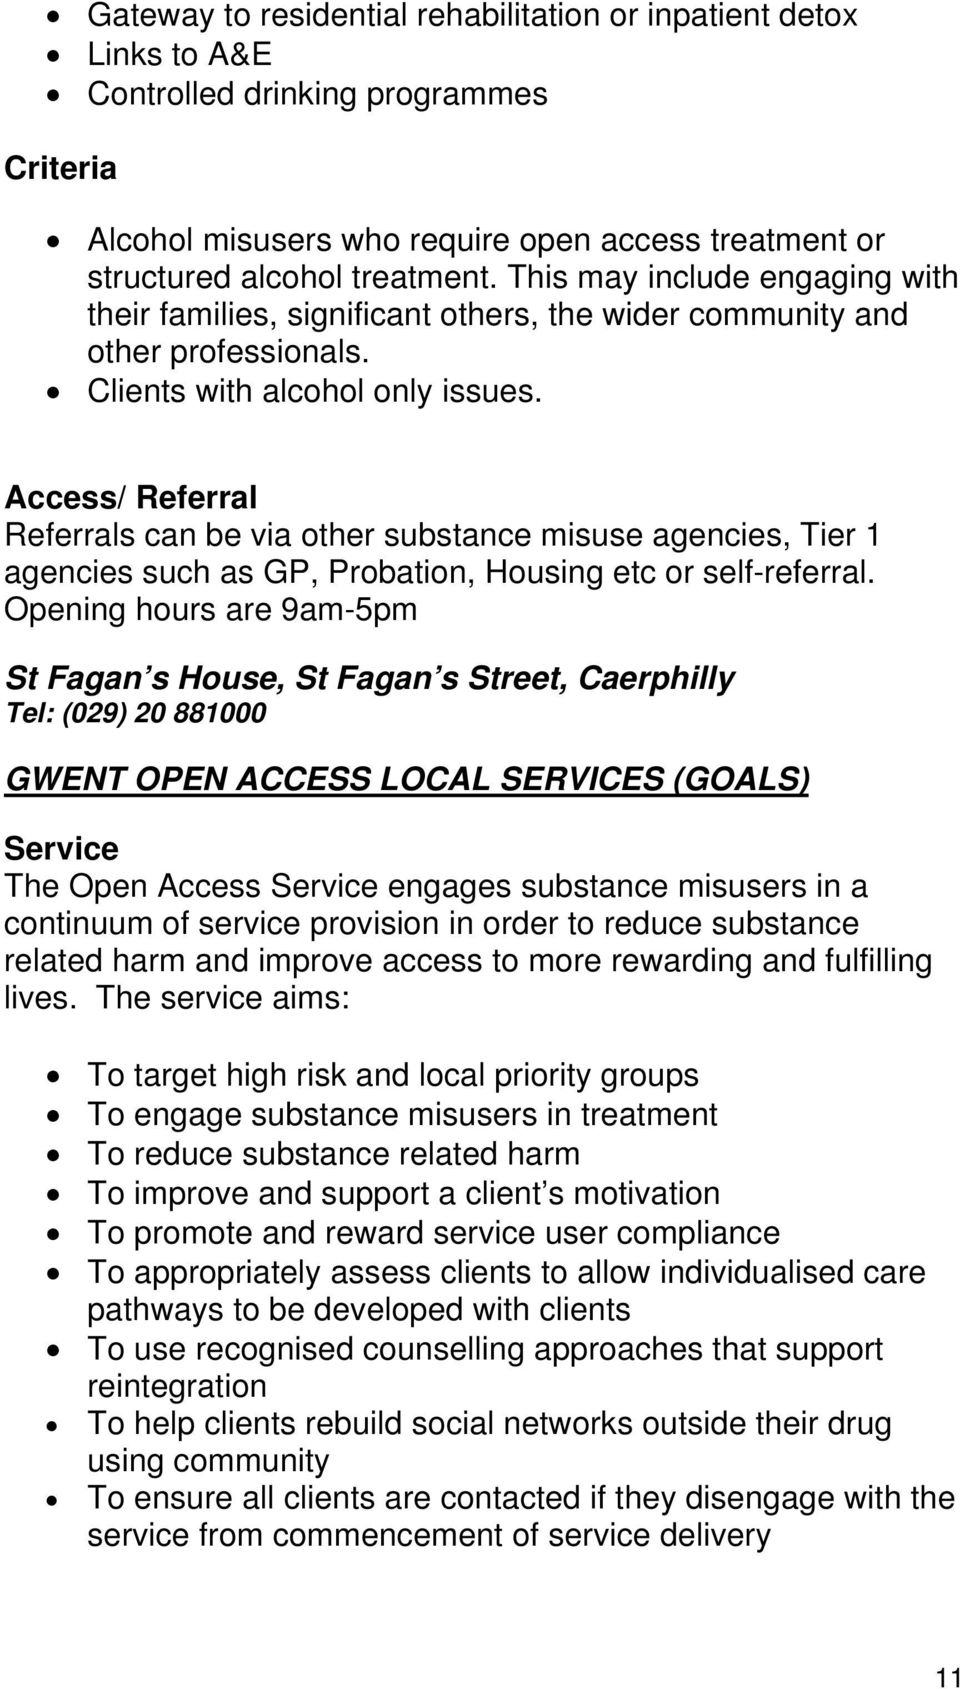 Access/ Referral Referrals can be via other substance misuse agencies, Tier 1 agencies such as GP, Probation, Housing etc or self-referral.